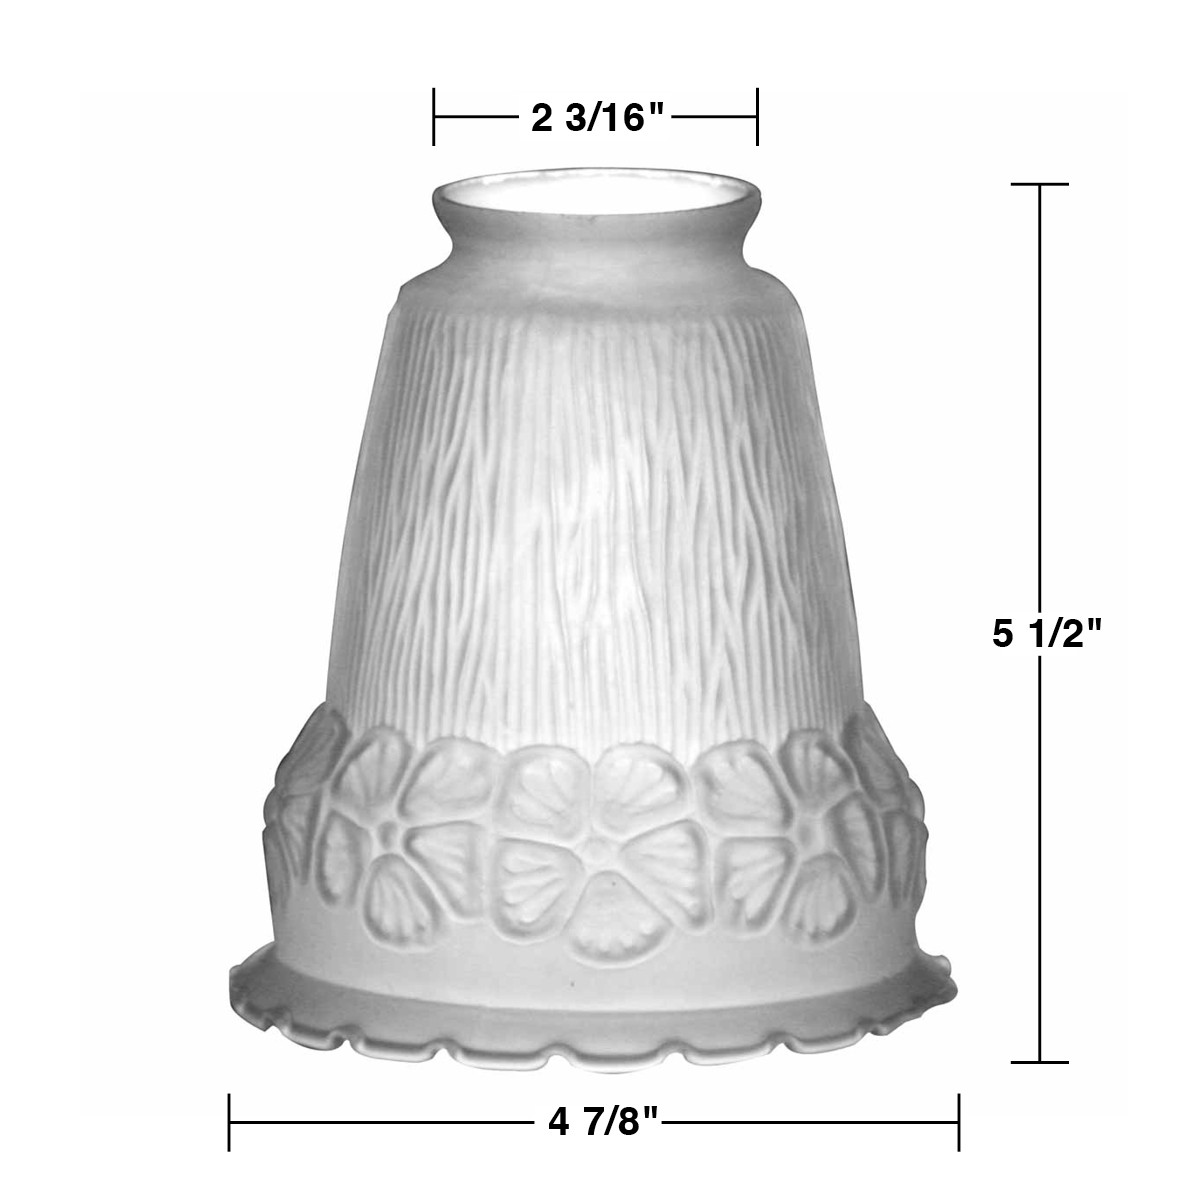 Lamp shade frosted glass flowers bell 5 1 2 h 2 1 4 fitter - Artistic d lamp shade designed with modern and elegant shape style ...